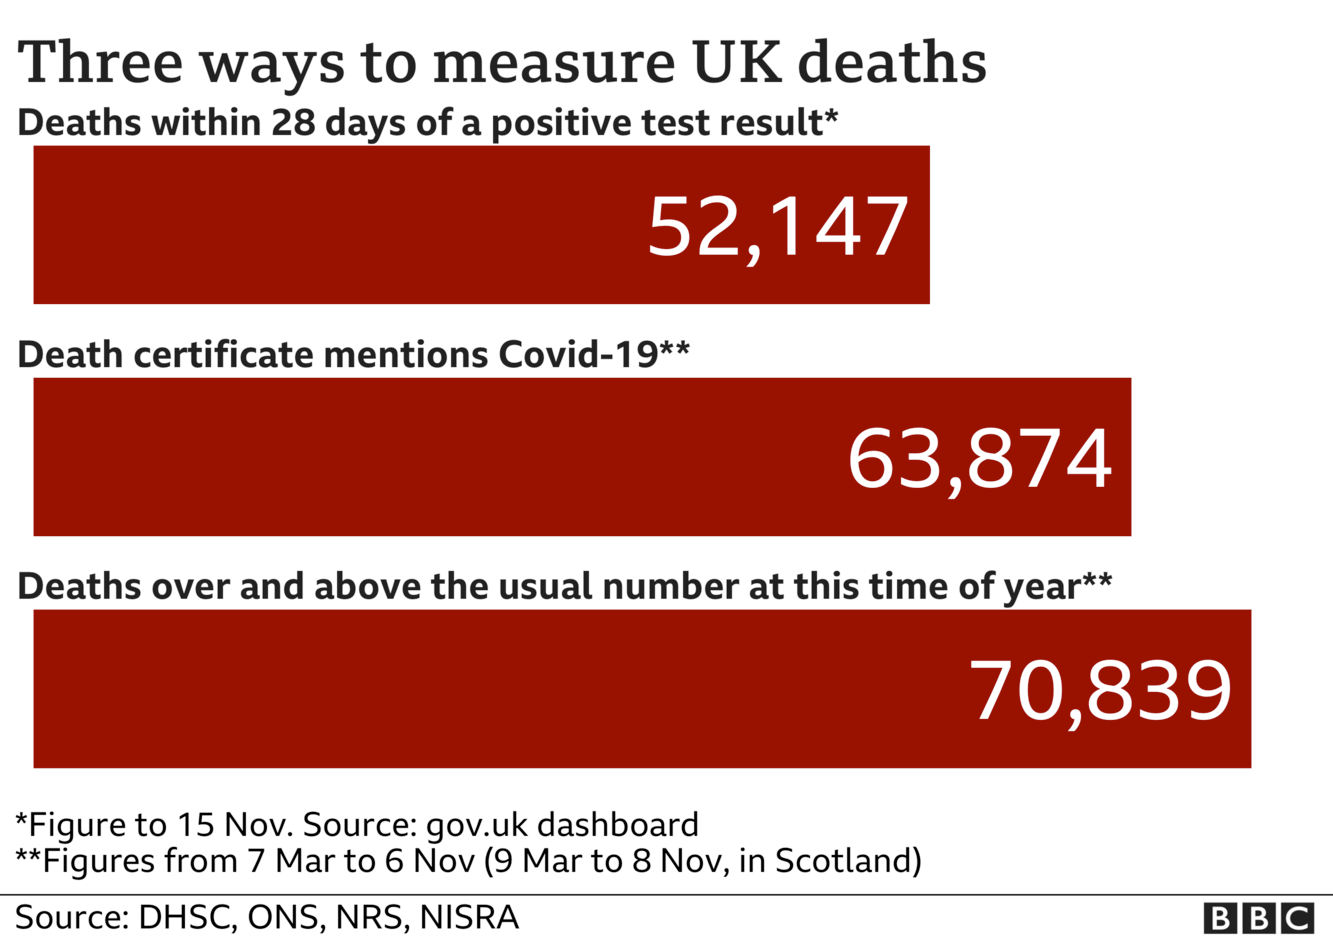 Chart shows three ways of measuring coronavirus deaths - government statistics count everyone who dies within 28 days of a positive test, the total is now 52,147, ONS stats include everyone where coronavirus was mentioned on the death certificate and that total is now 63,874, the final total includes all excess deaths over and above the usual number and that is now 70,839.